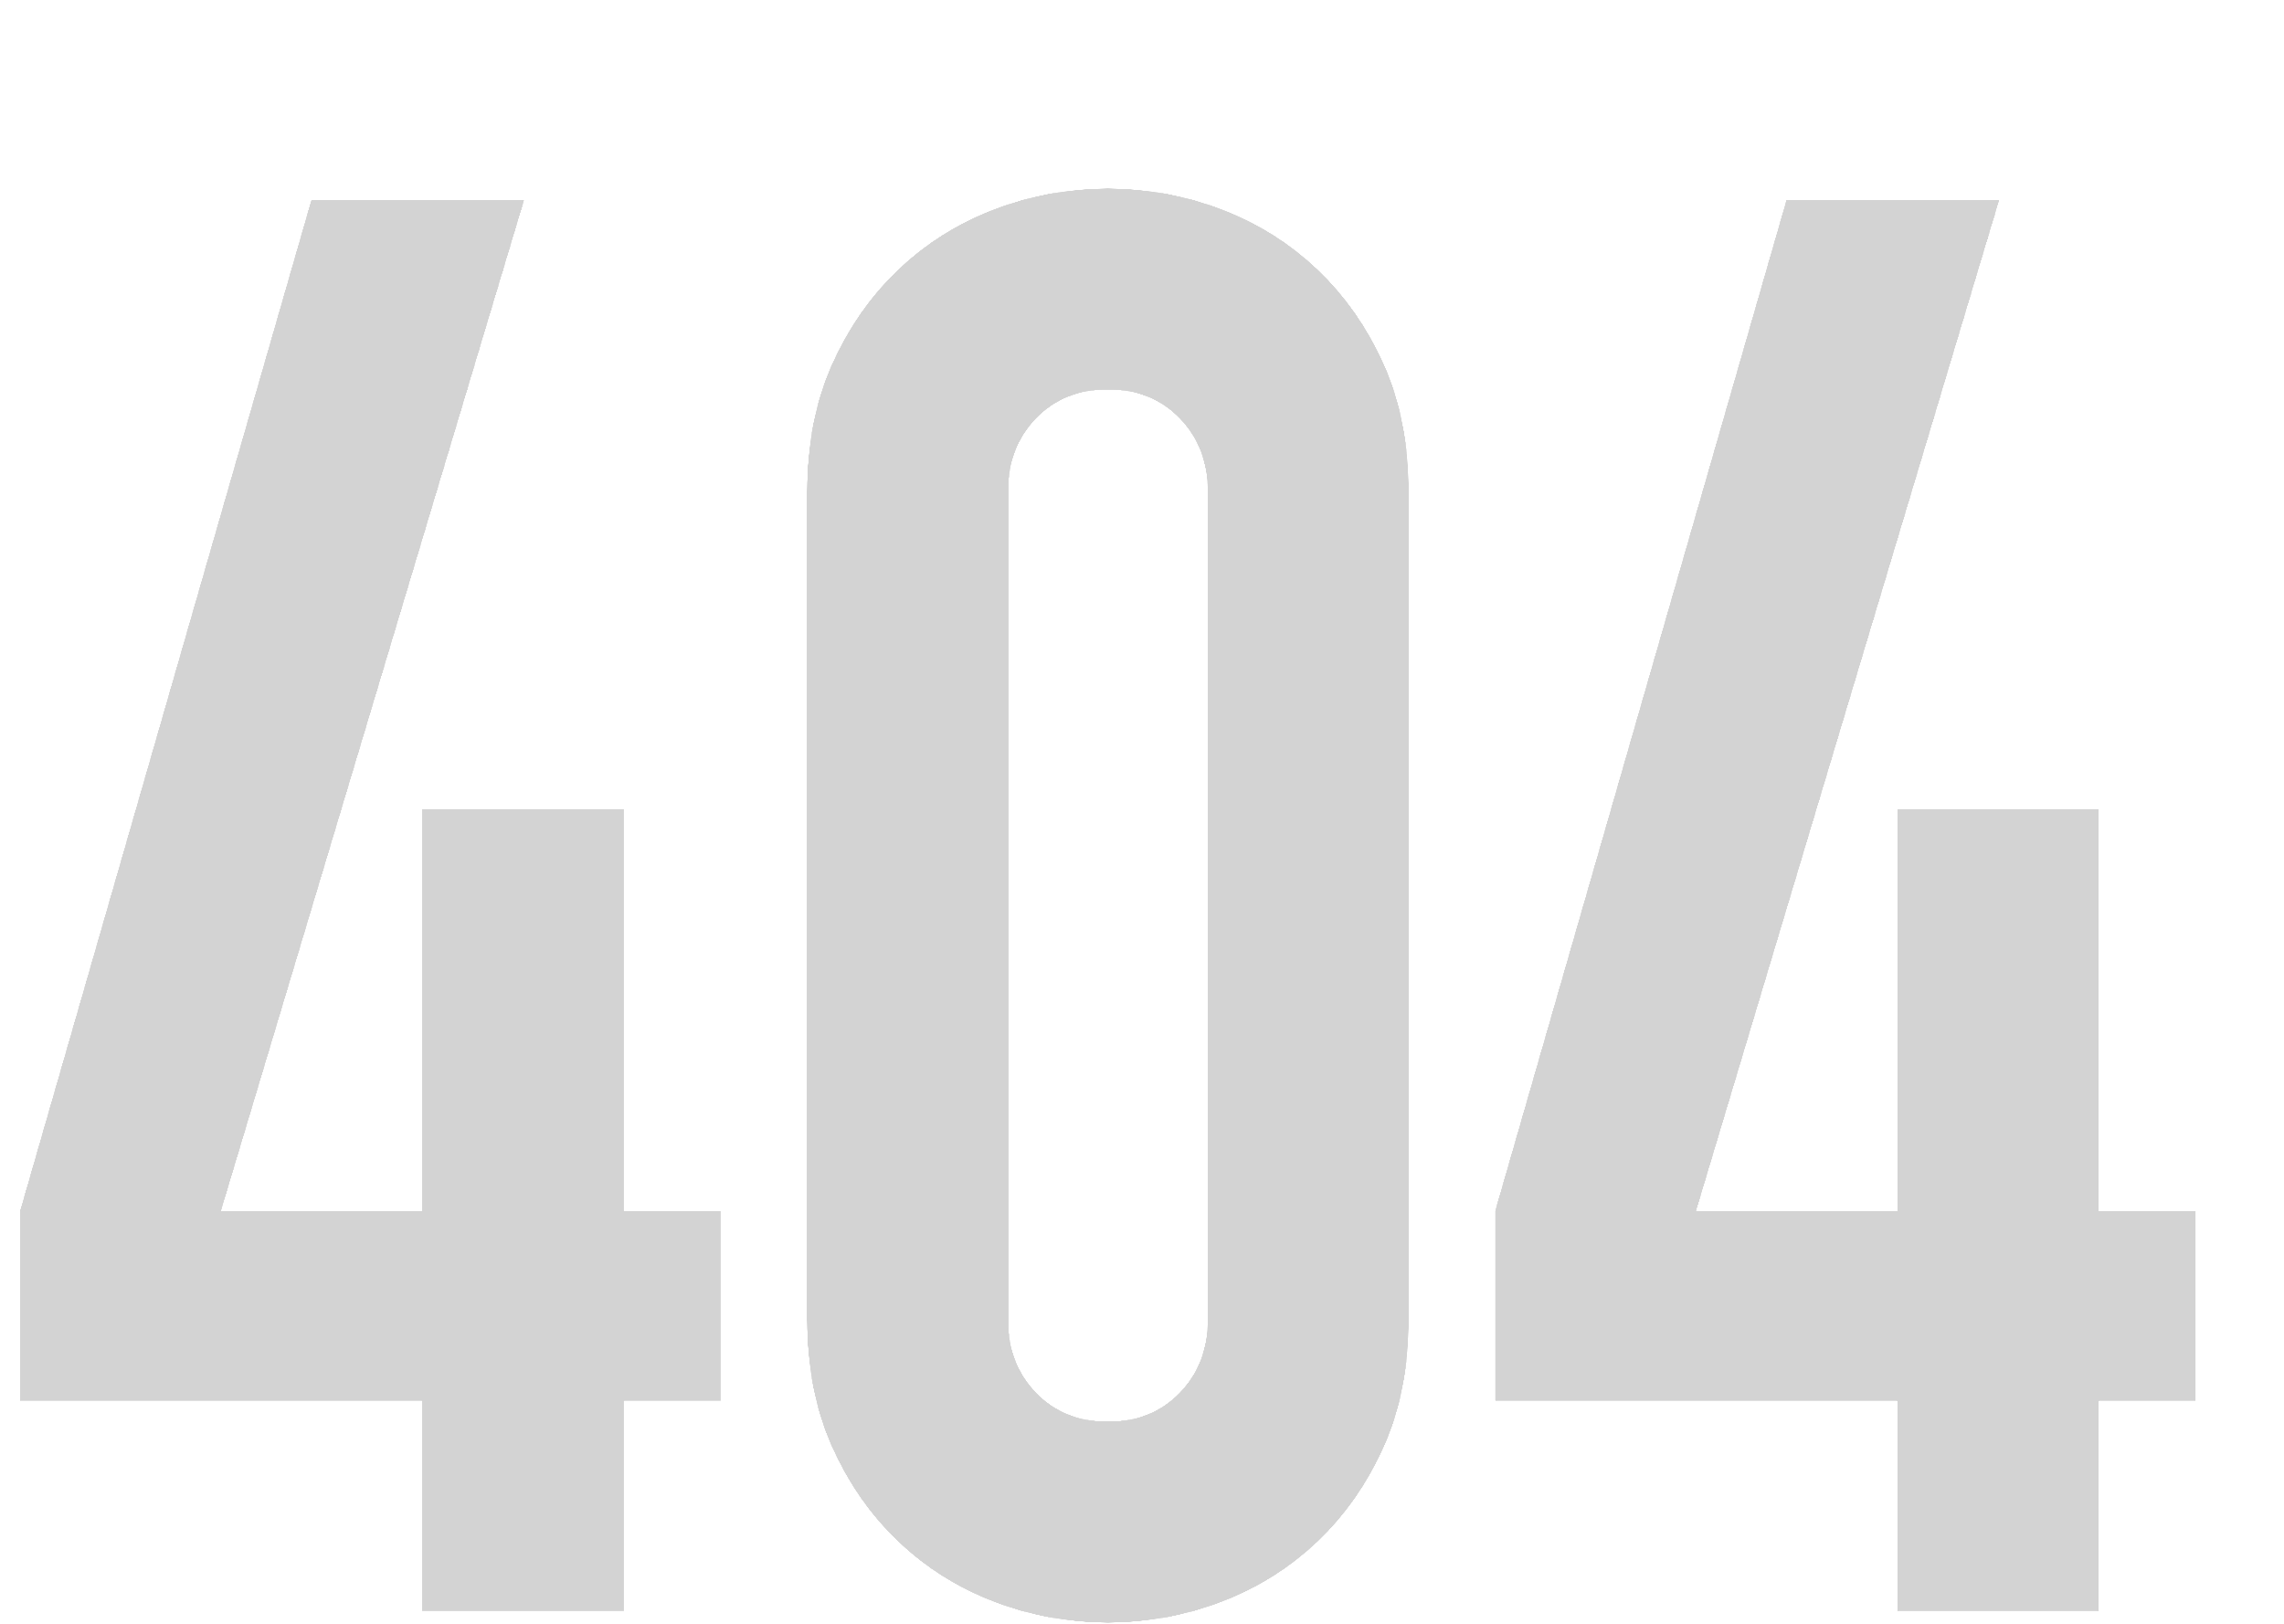 404-2.png